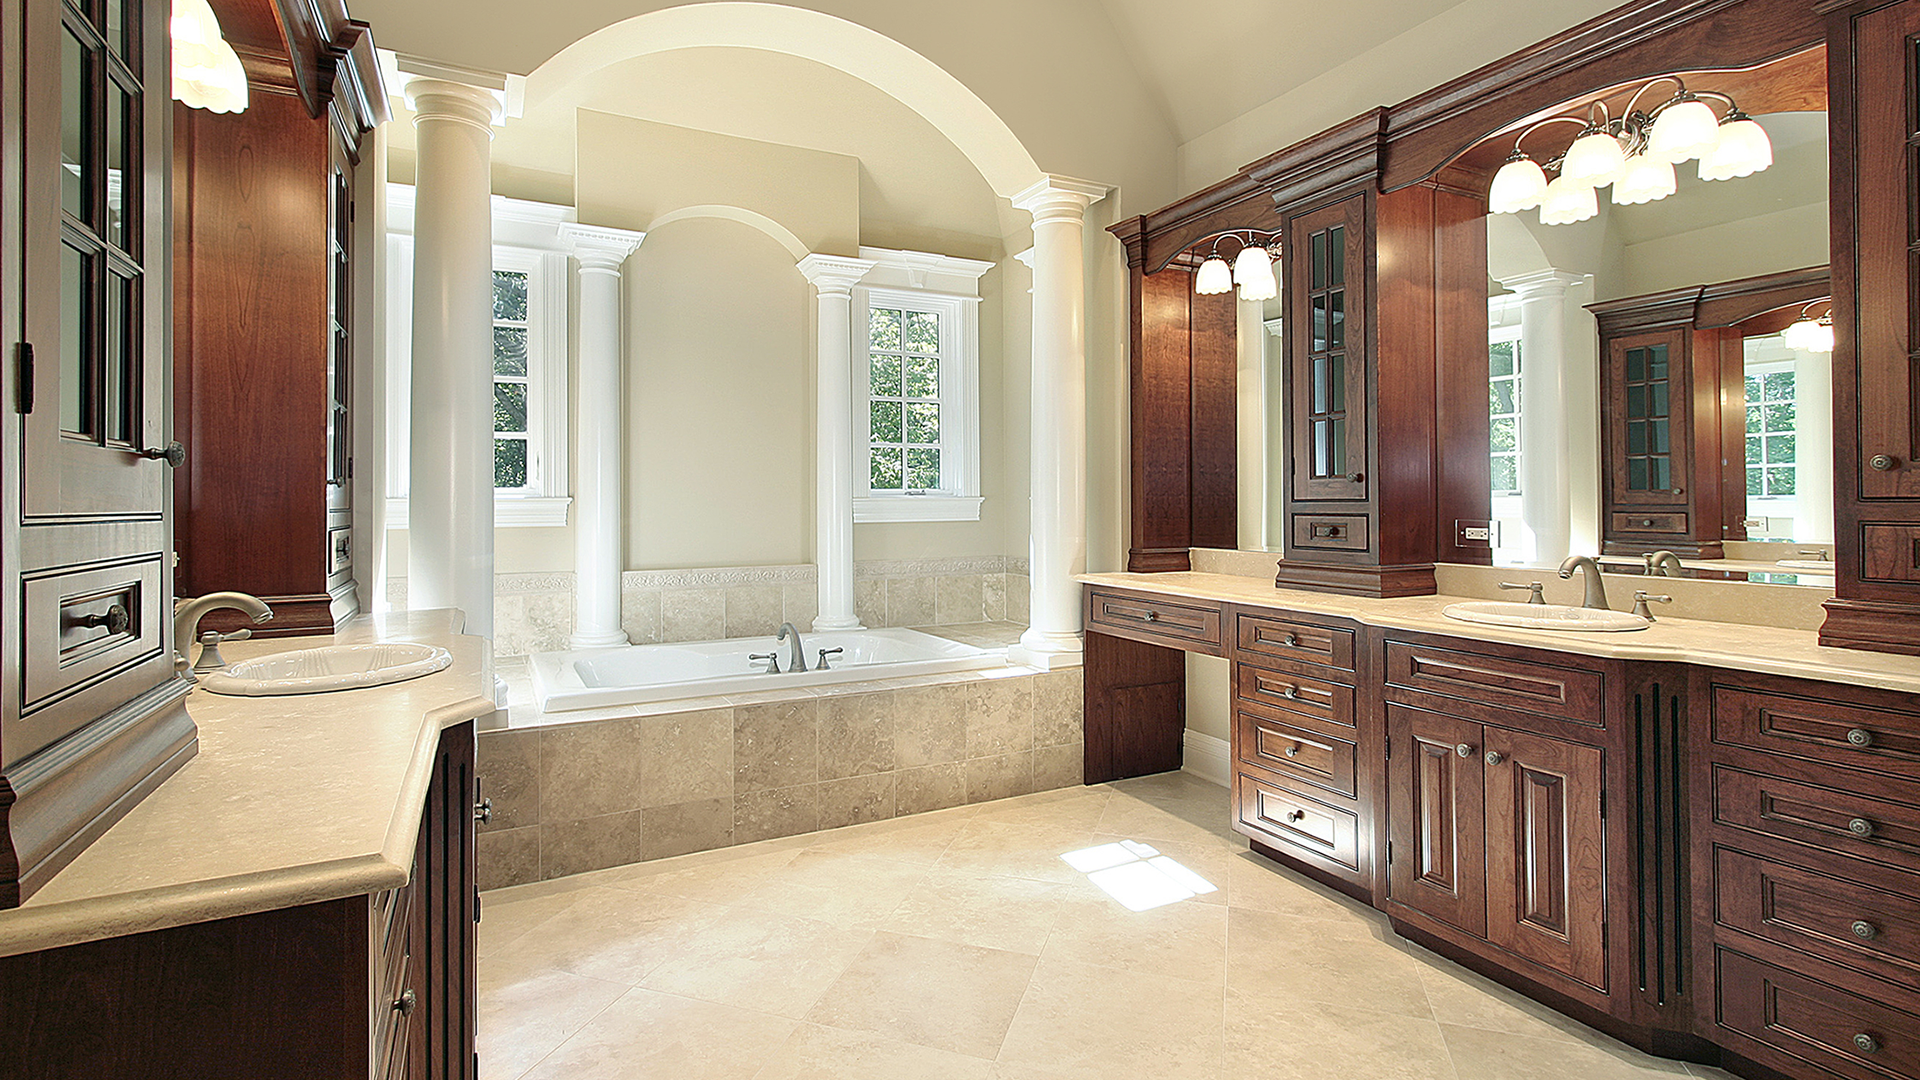 SPLENDID MASTER BATH